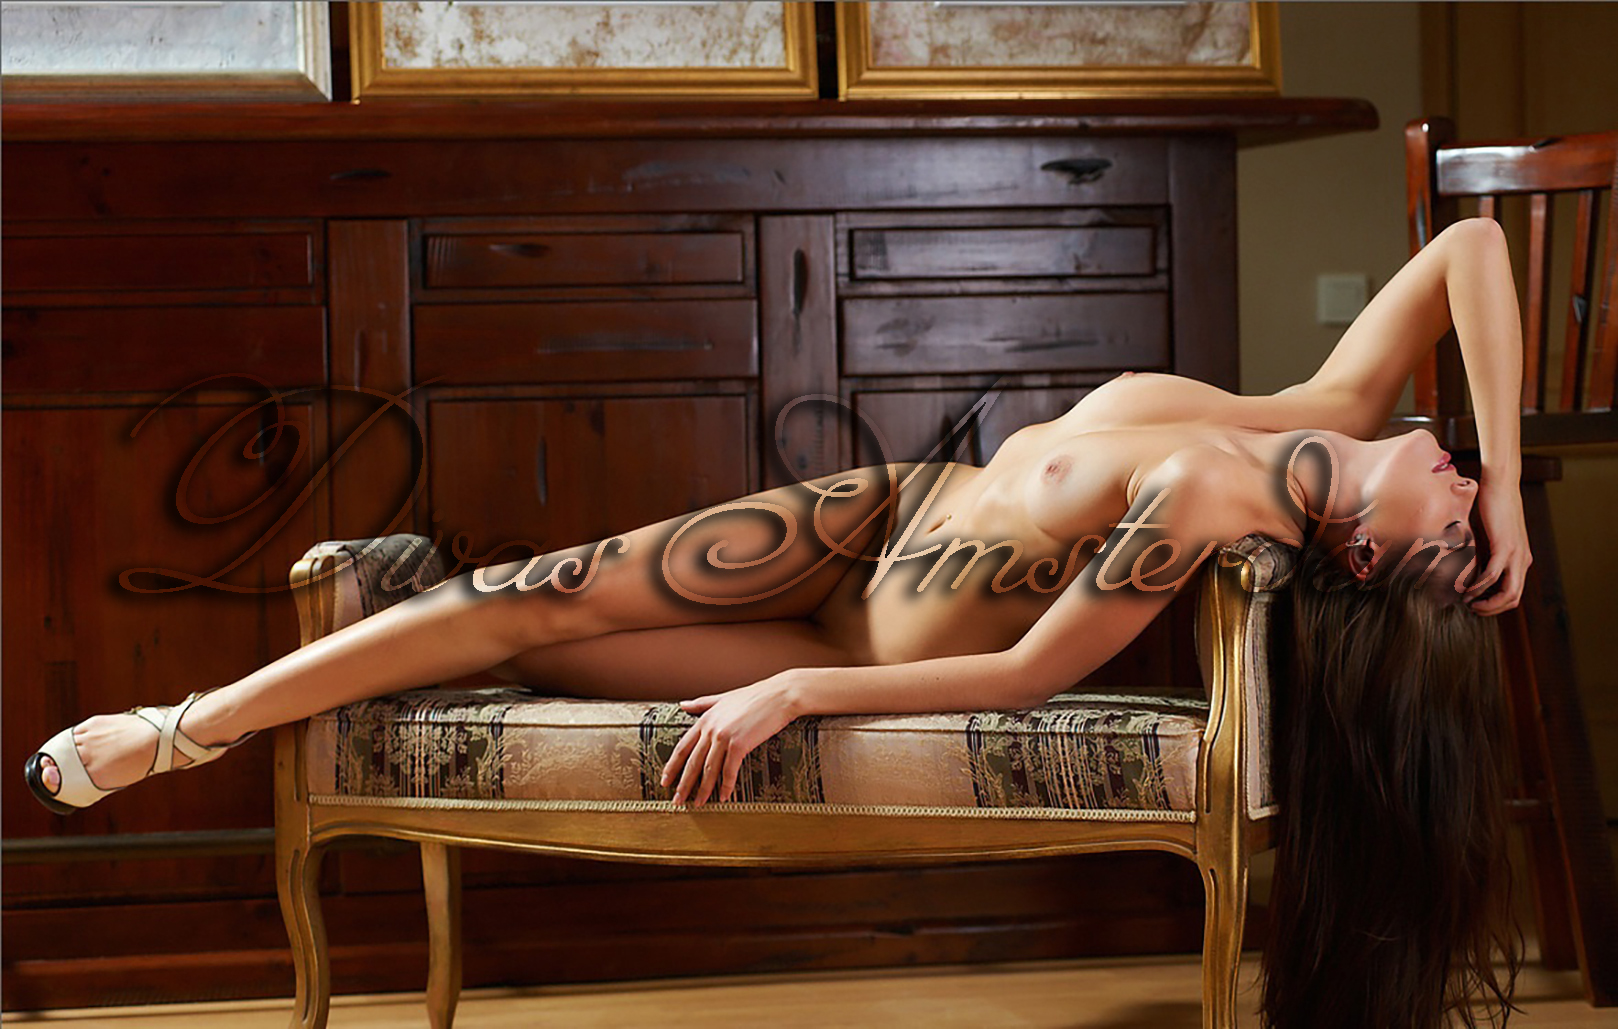 Escort Amsterdam Madalyn hotel naked babe on the couch